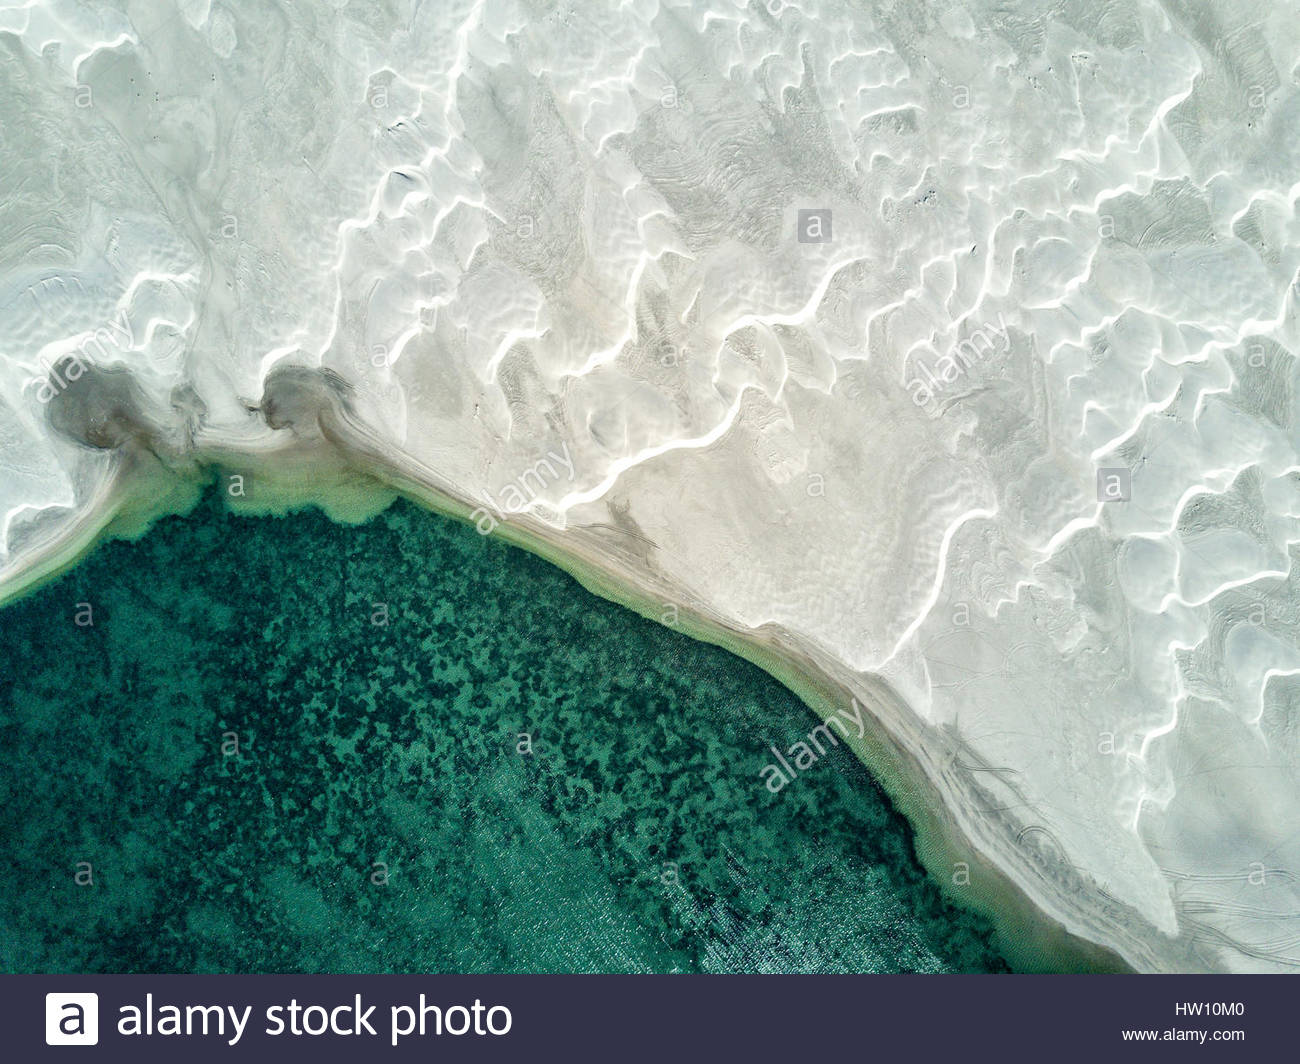 An aerial view of sand dunes. - Stock Image